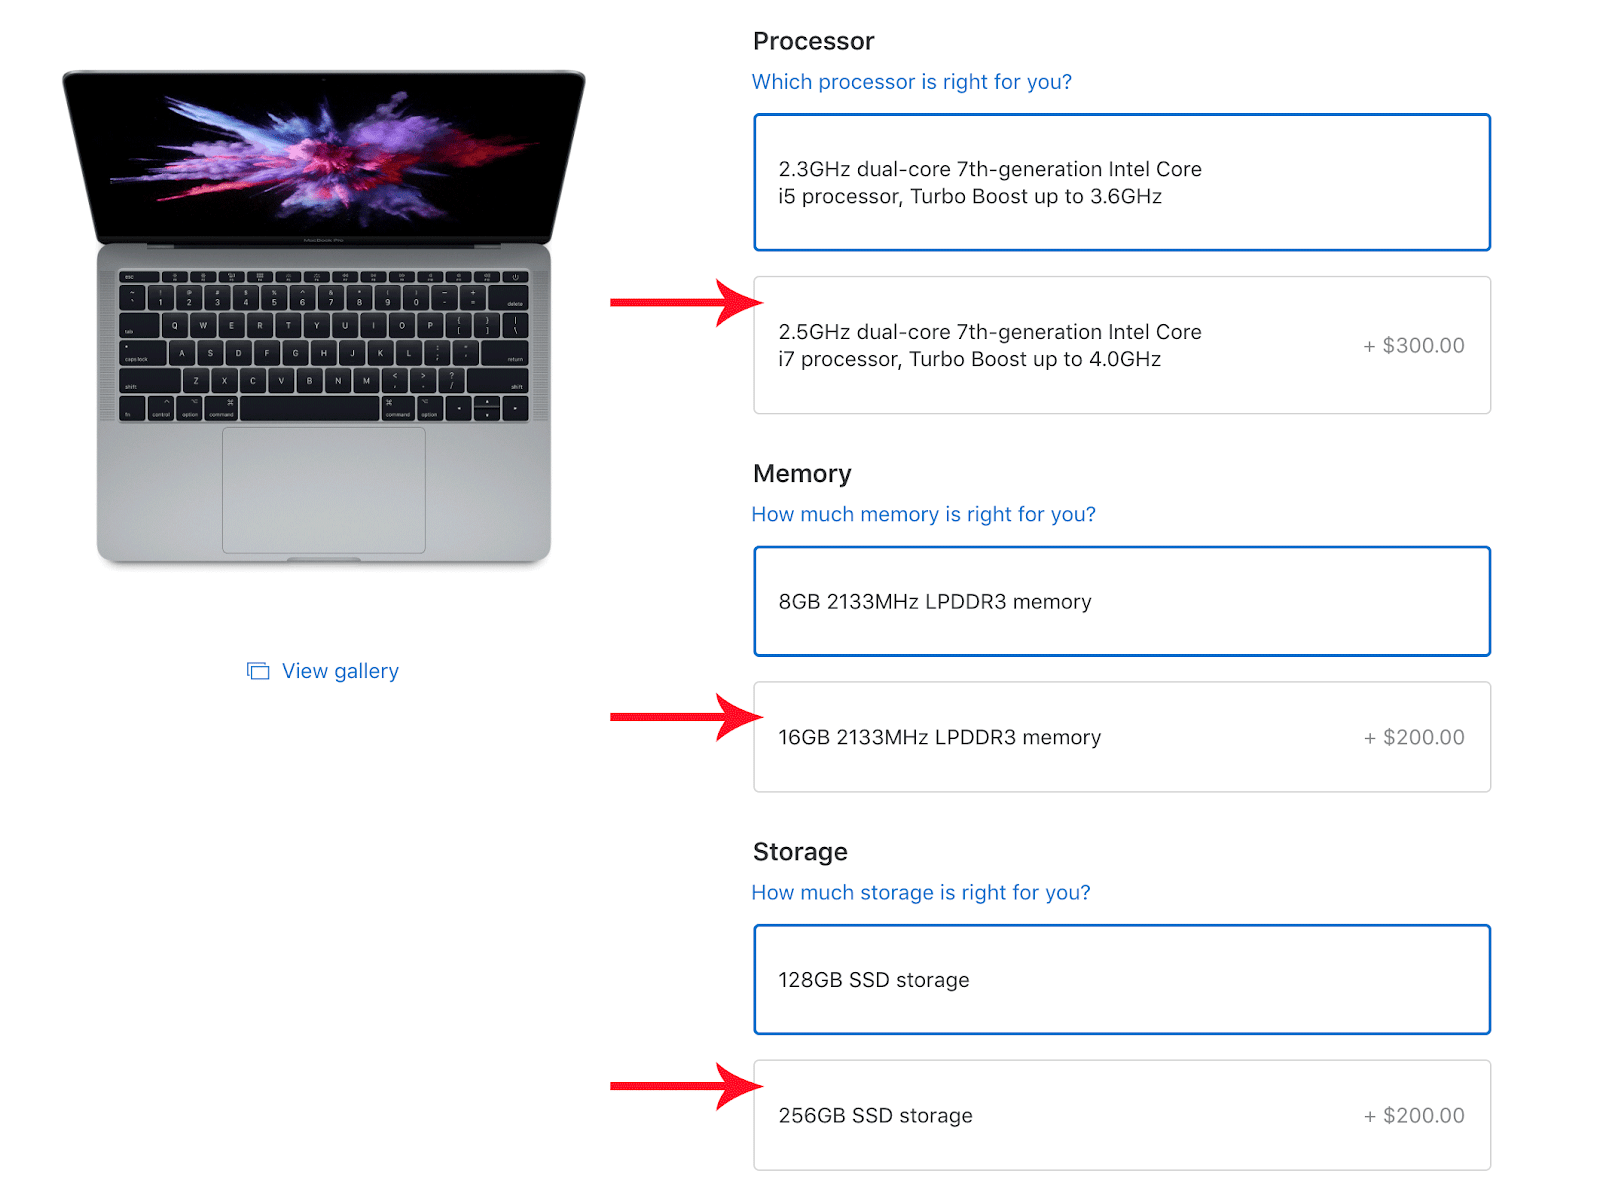 Screenshot showing purchasing options on a product page